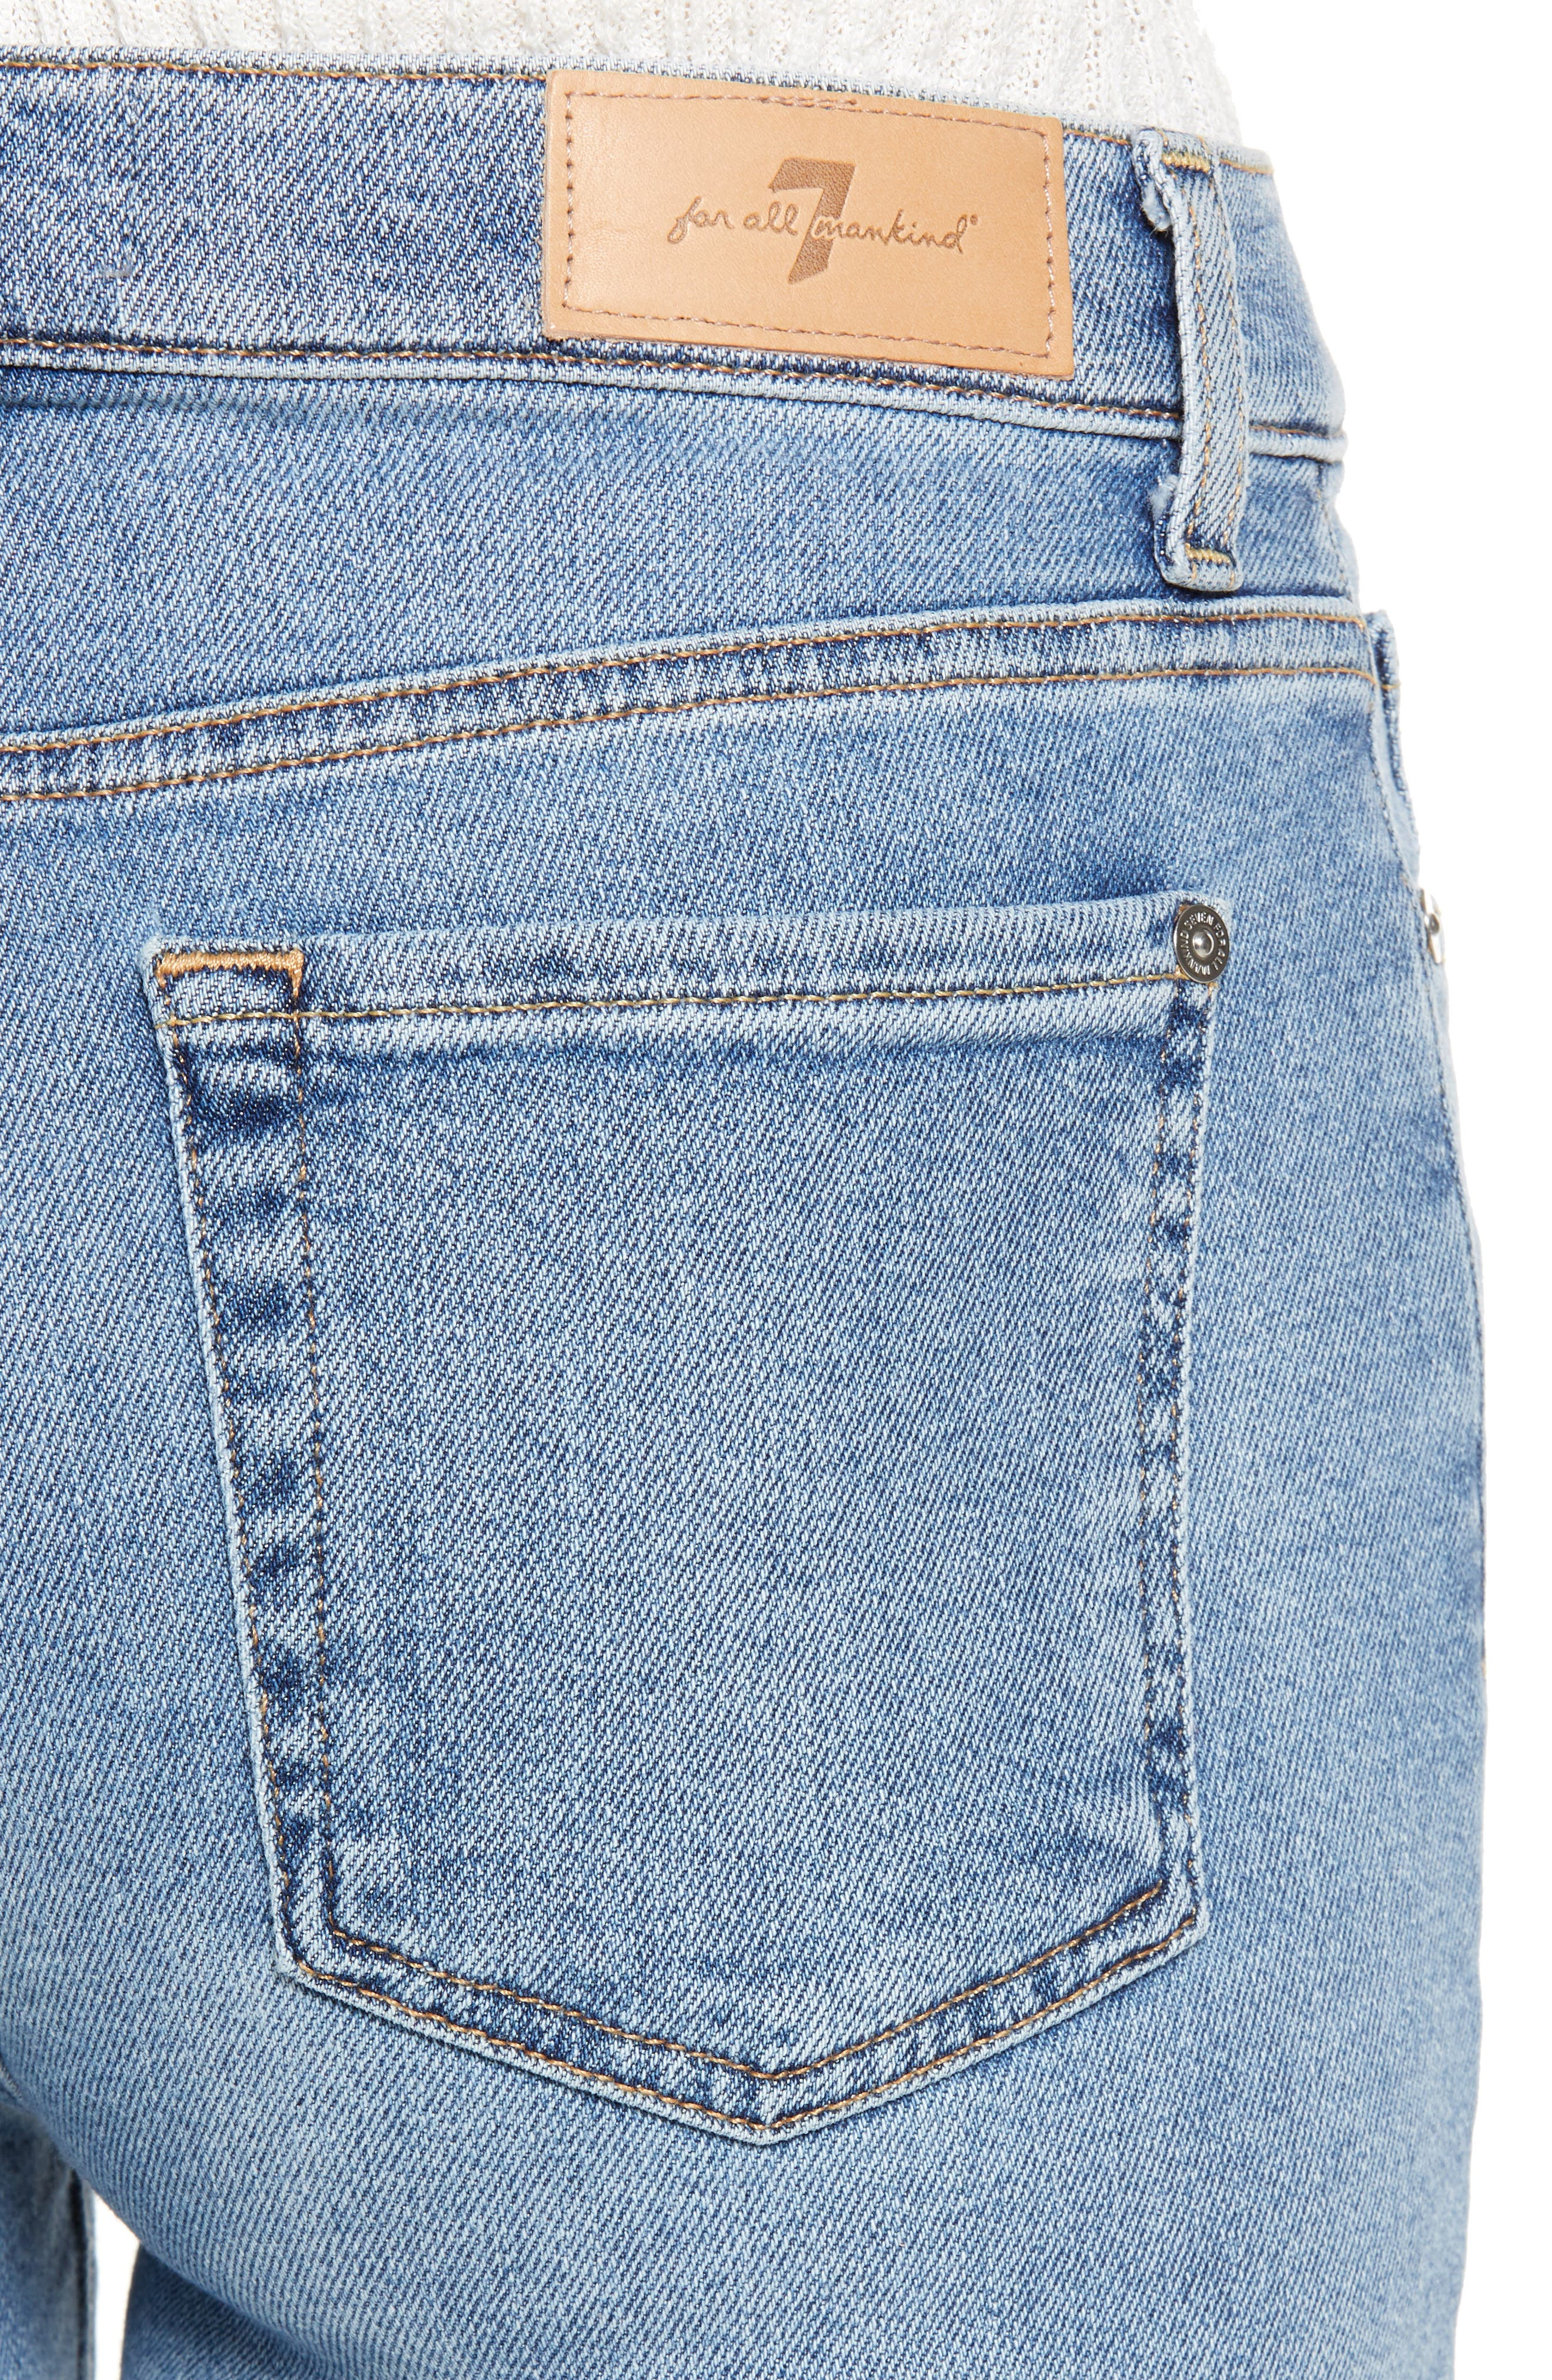 7 FOR ALL MANKIND<SUP>®</SUP>, High Waist Ankle Skinny Jeans, Alternate thumbnail 5, color, LUXE VINTAGE FLORA